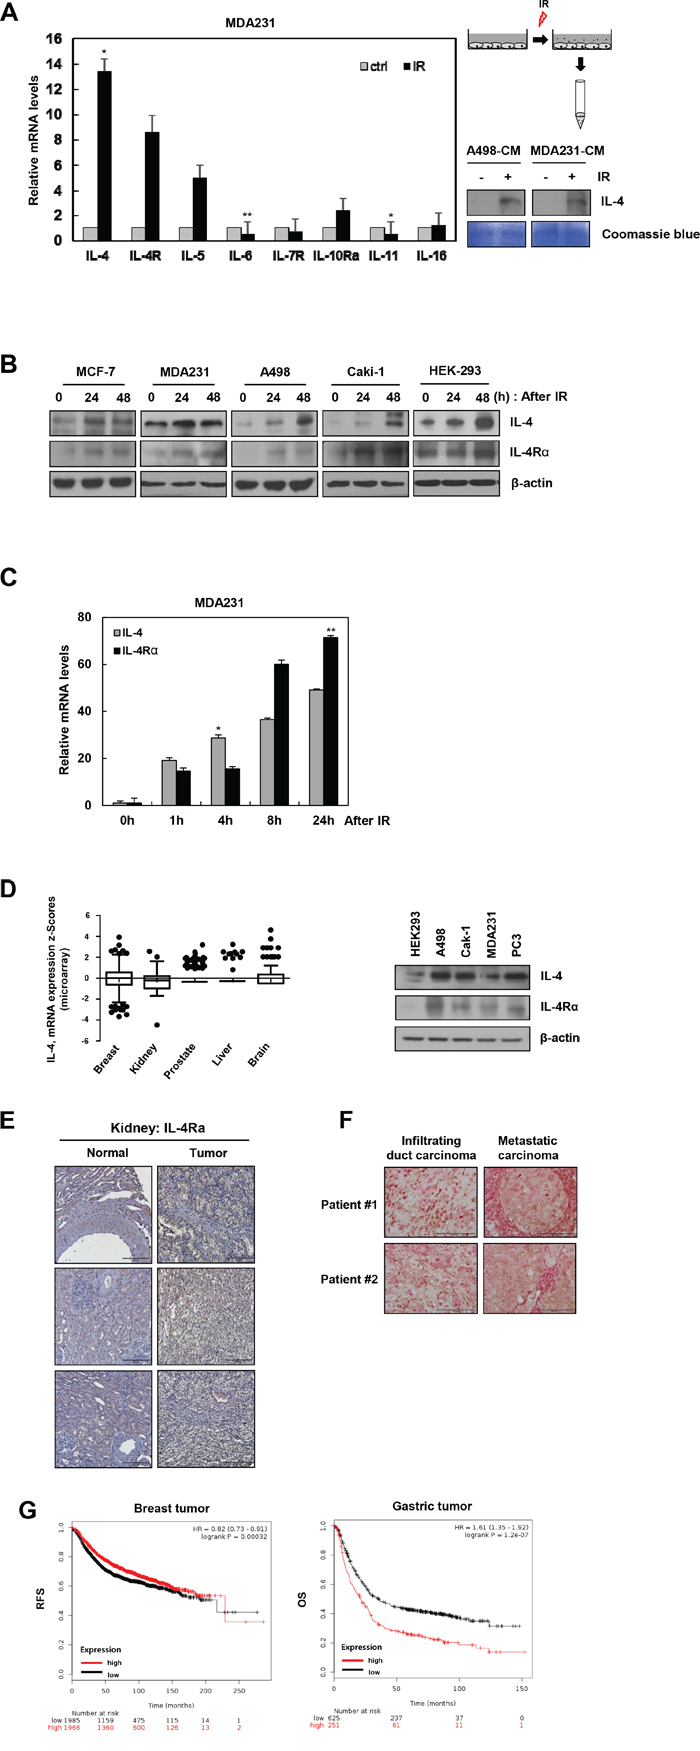 IR induces IL-4 and IL-4Rα expression in cancer cell lines.